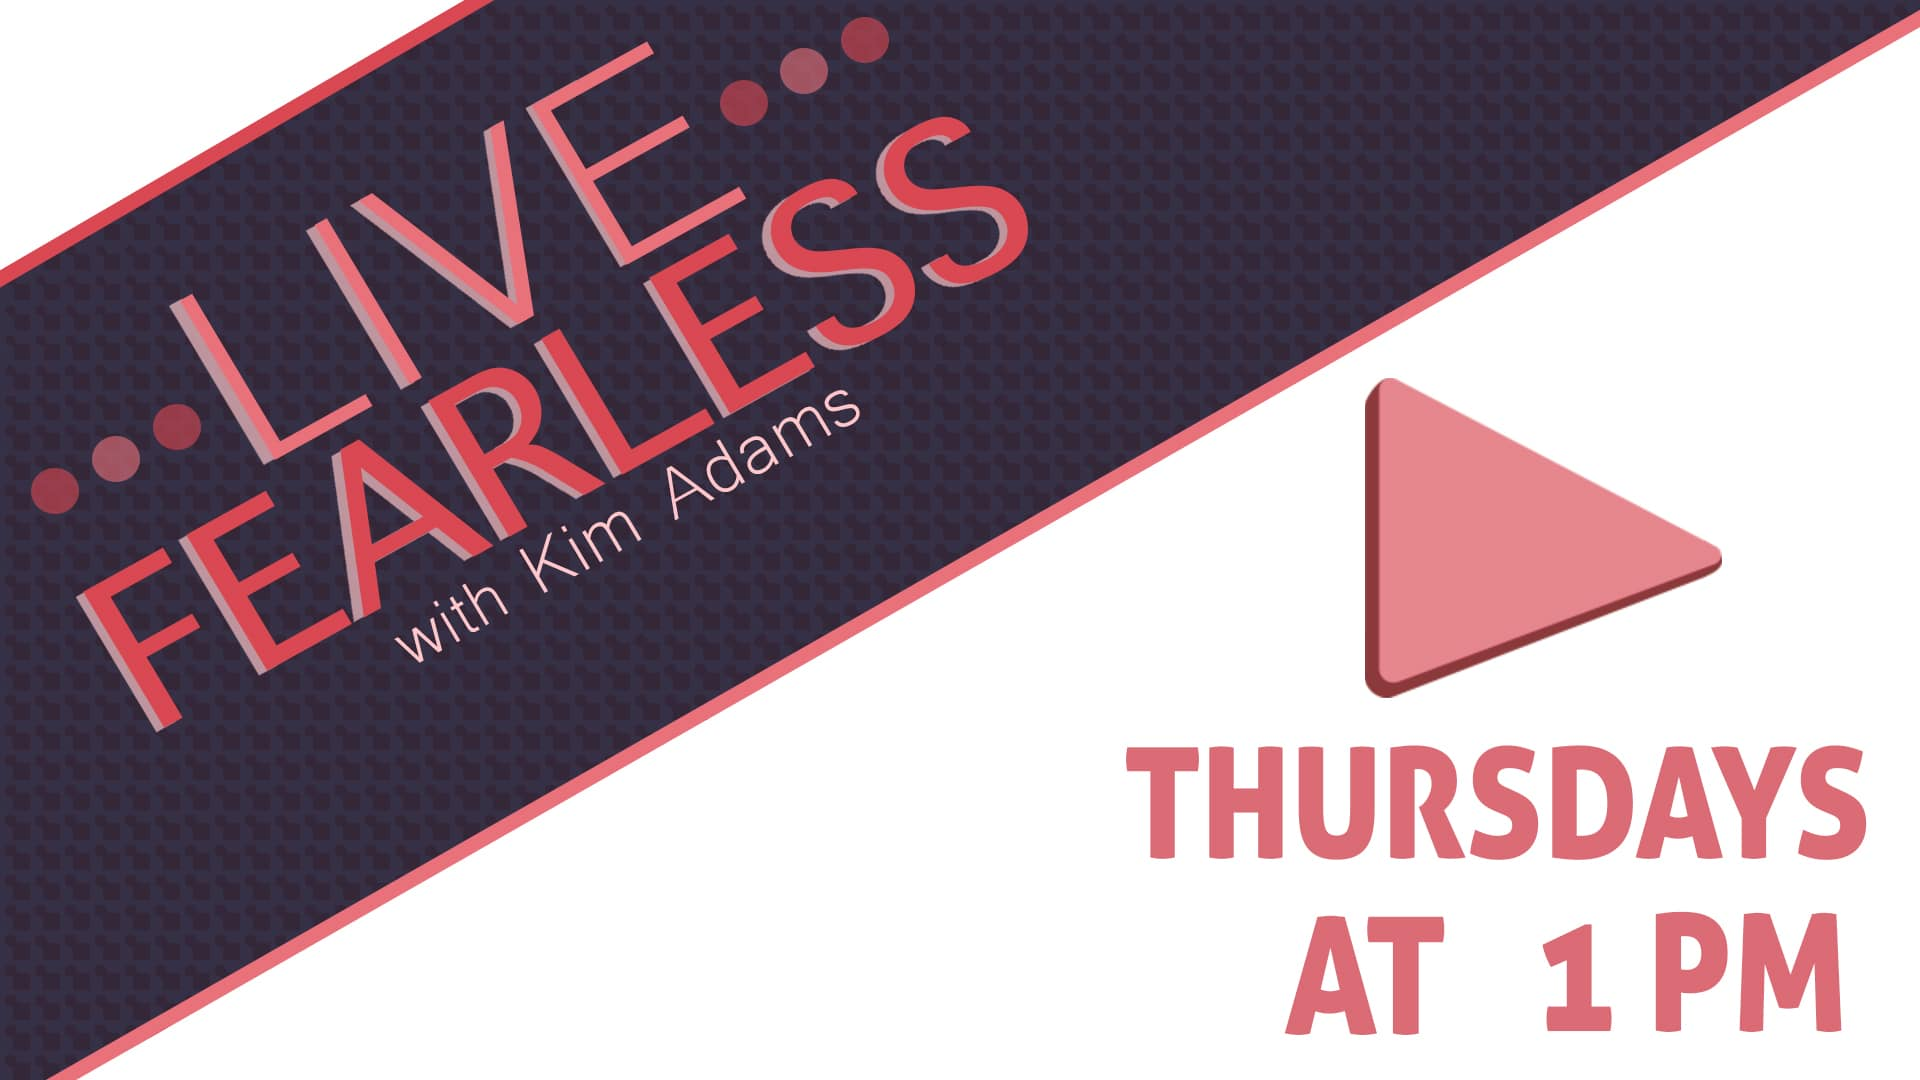 Watch Live - Live Fearless with Kim Adams